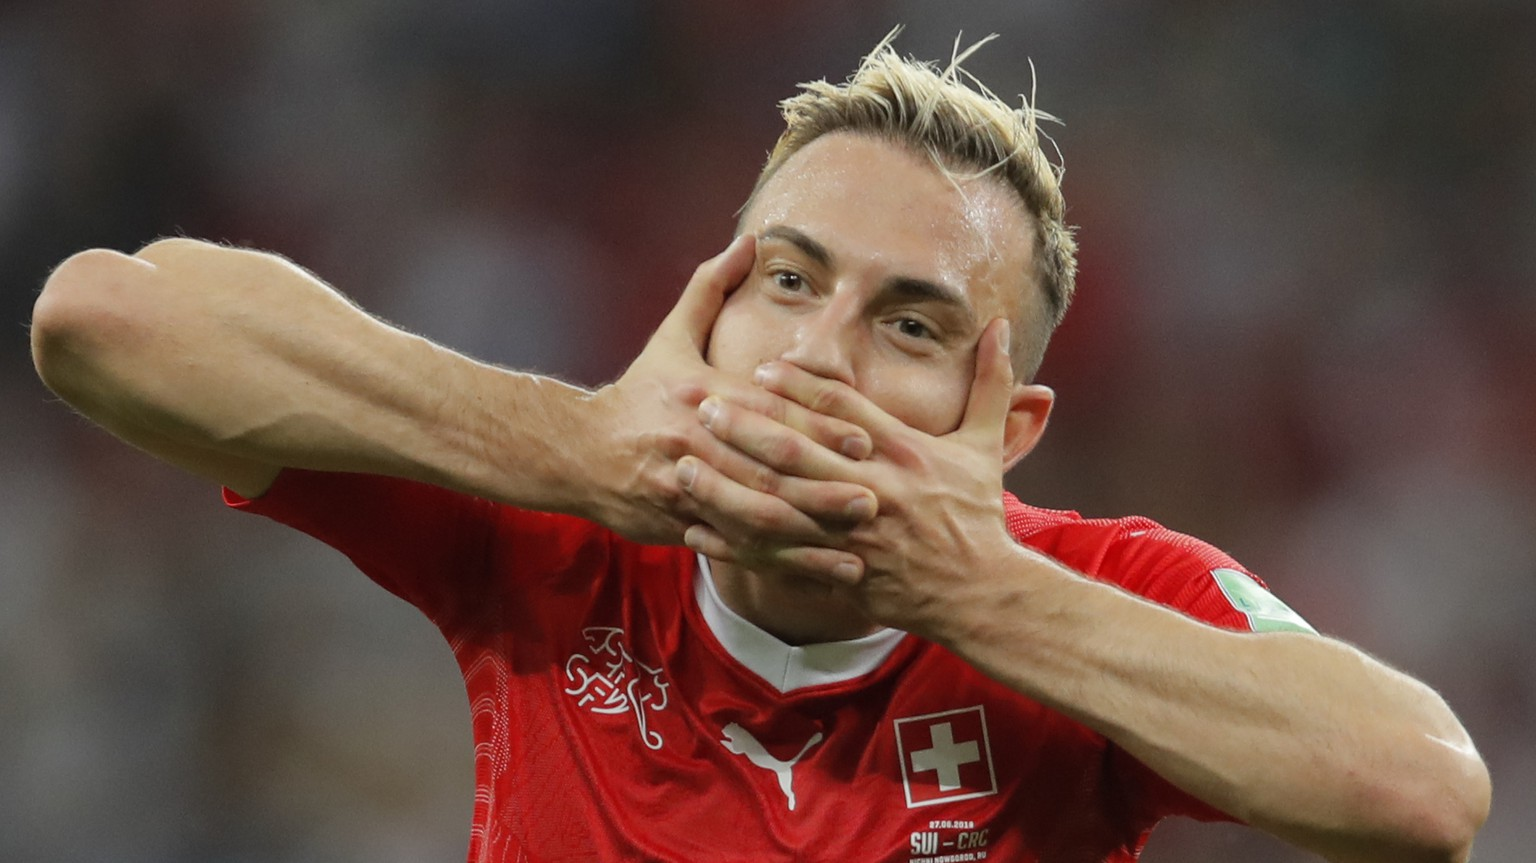 Switzerland's Josip Drmic celebrates after scoring his side's second goal during the group E match between Switzerland and Costa Rica at the 2018 soccer World Cup in the Nizhny Novgorod Stadium in Nizhny Novgorod , Russia, Wednesday, June 27, 2018. Drmic scored once and the match ended in a 2-2 draw. (AP Photo/Vadim Ghirda)